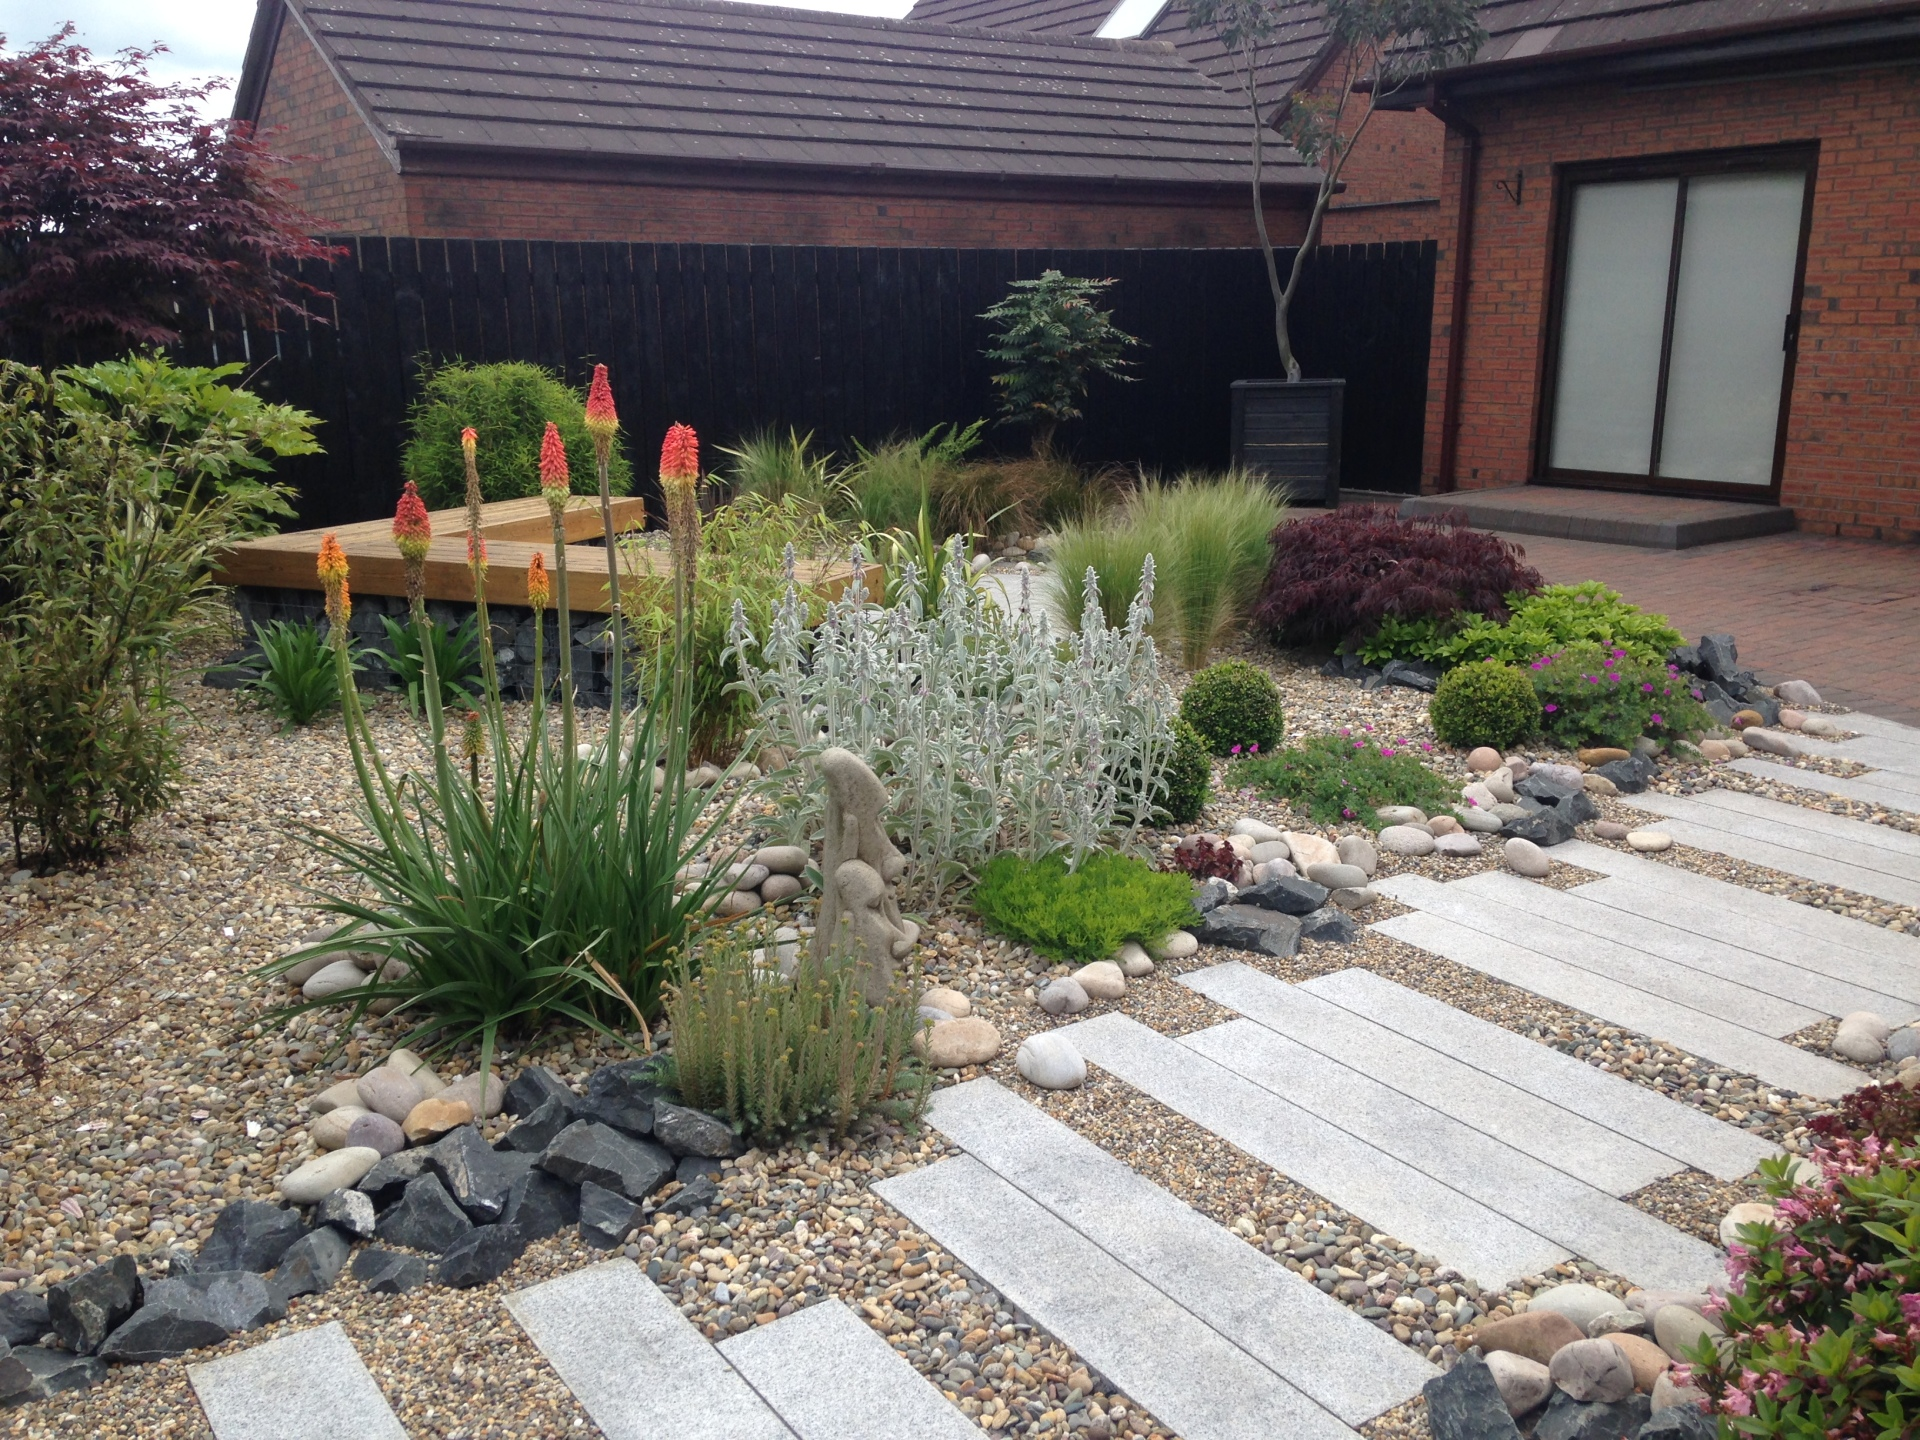 Low maintenance architectural planting through gravel mulch.